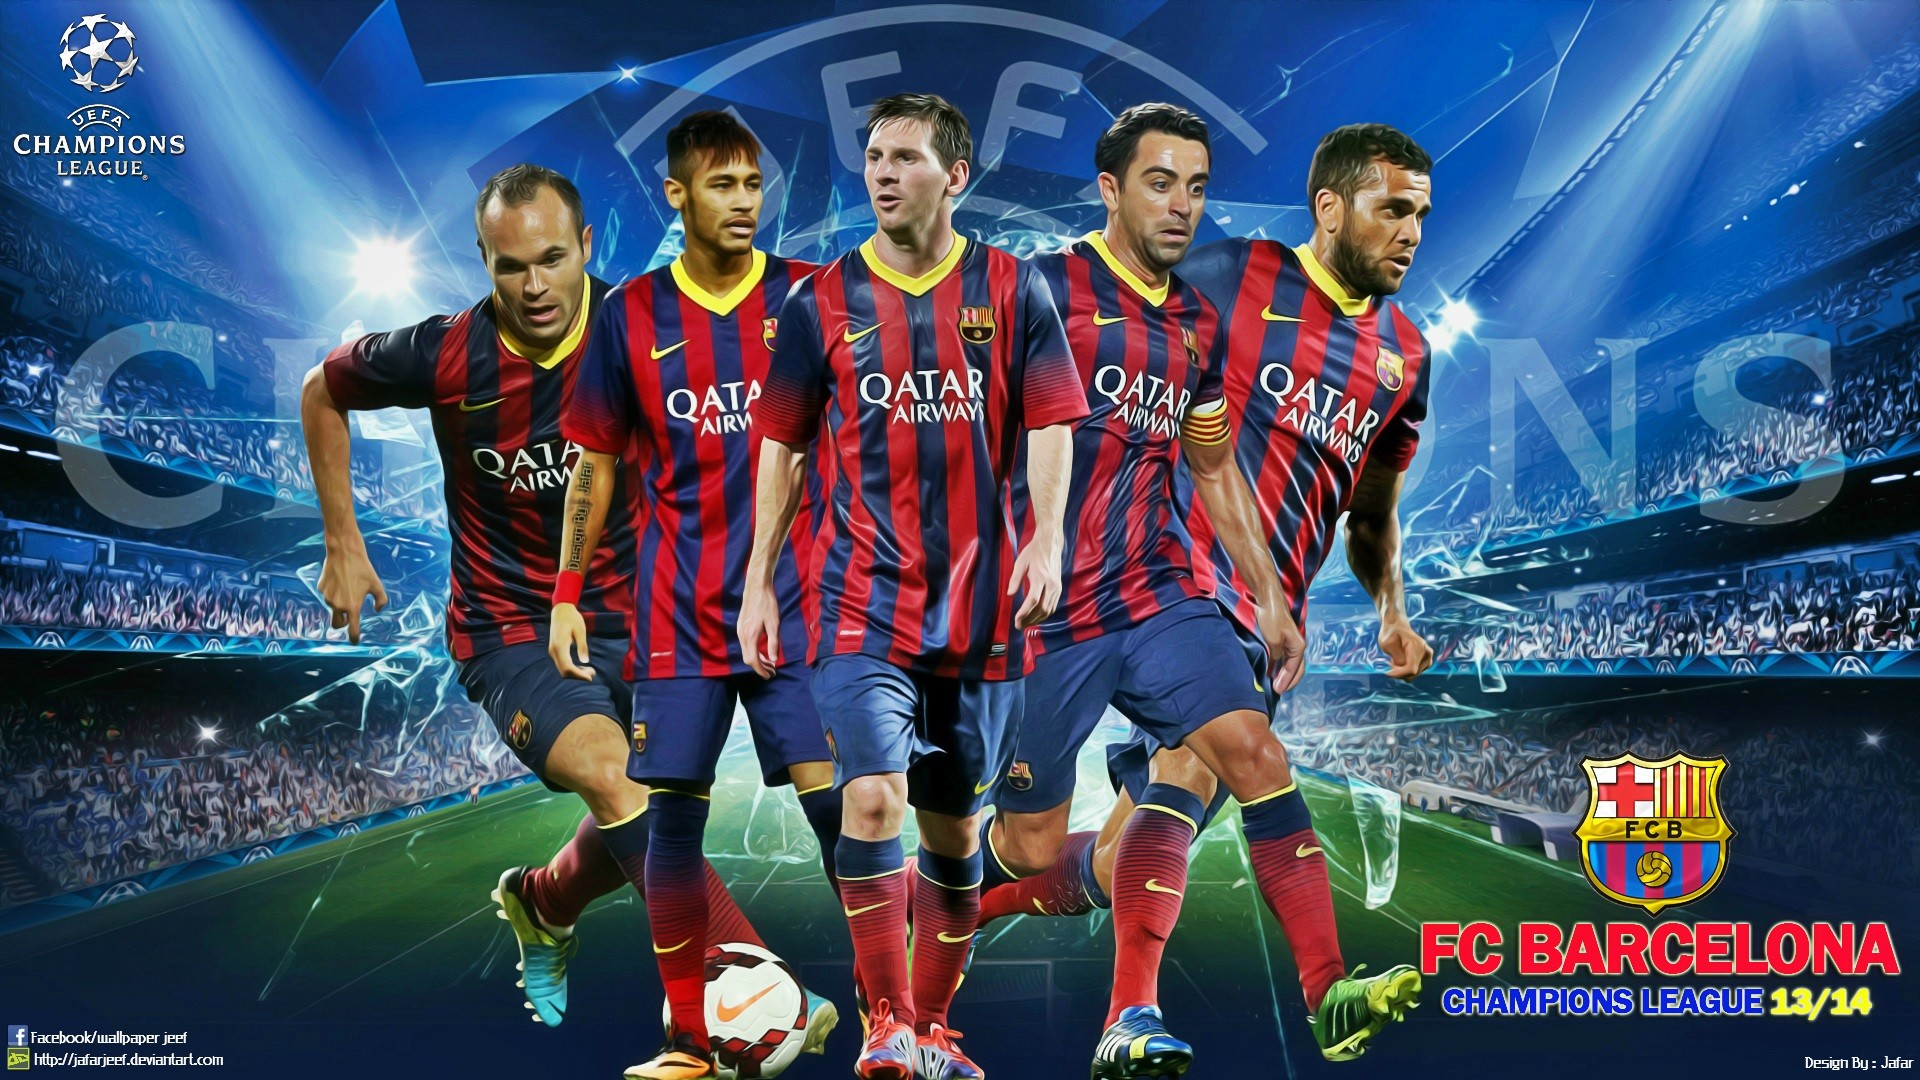 Uefa Champions League Wallpaper HD (72+ Images